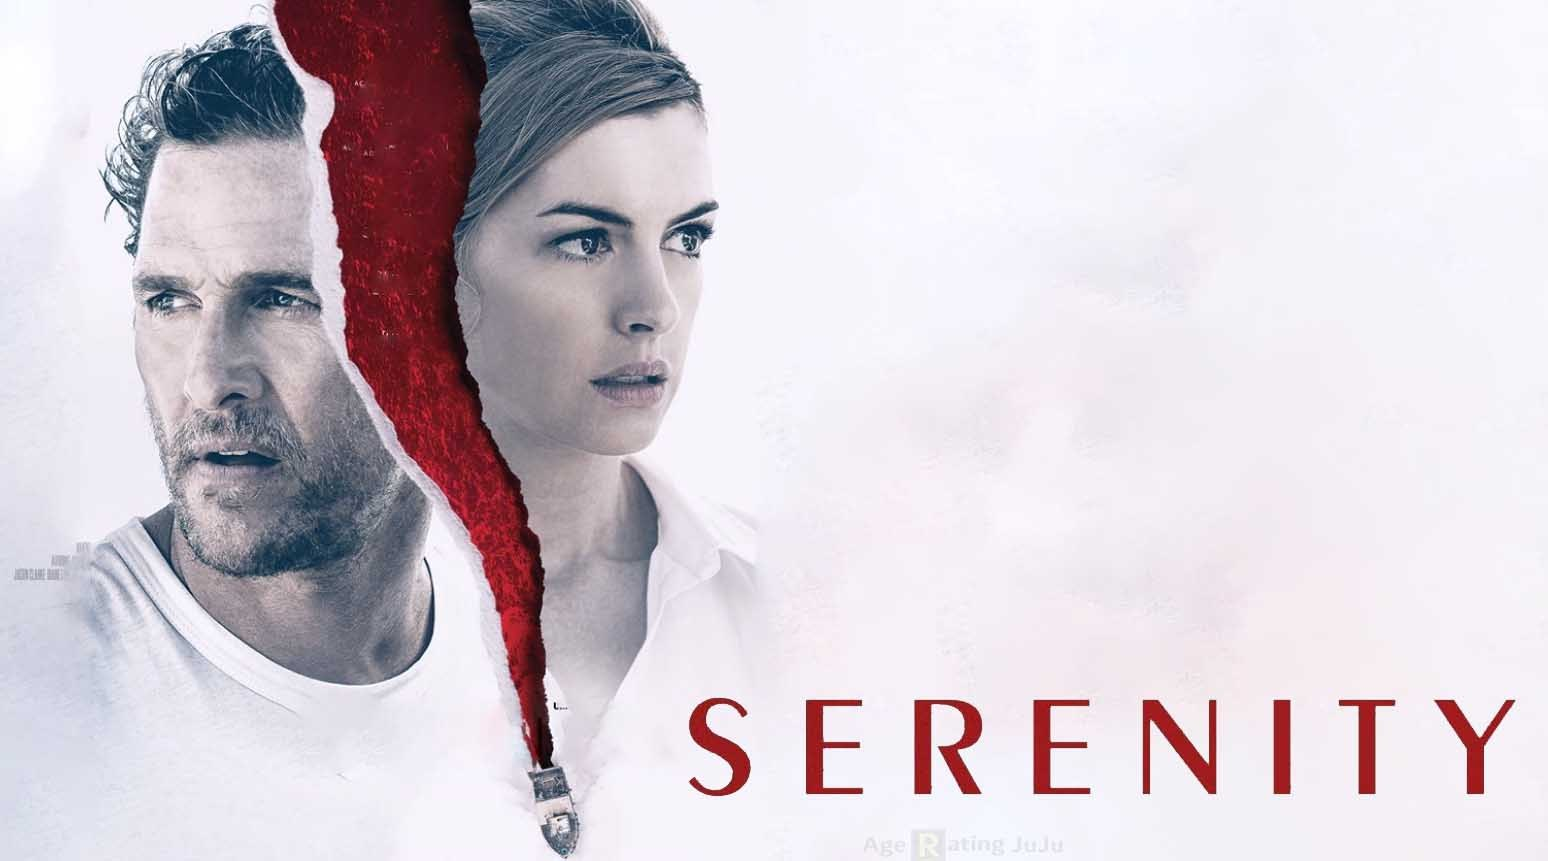 'Serenity' has been almost unanimously panned by critics.